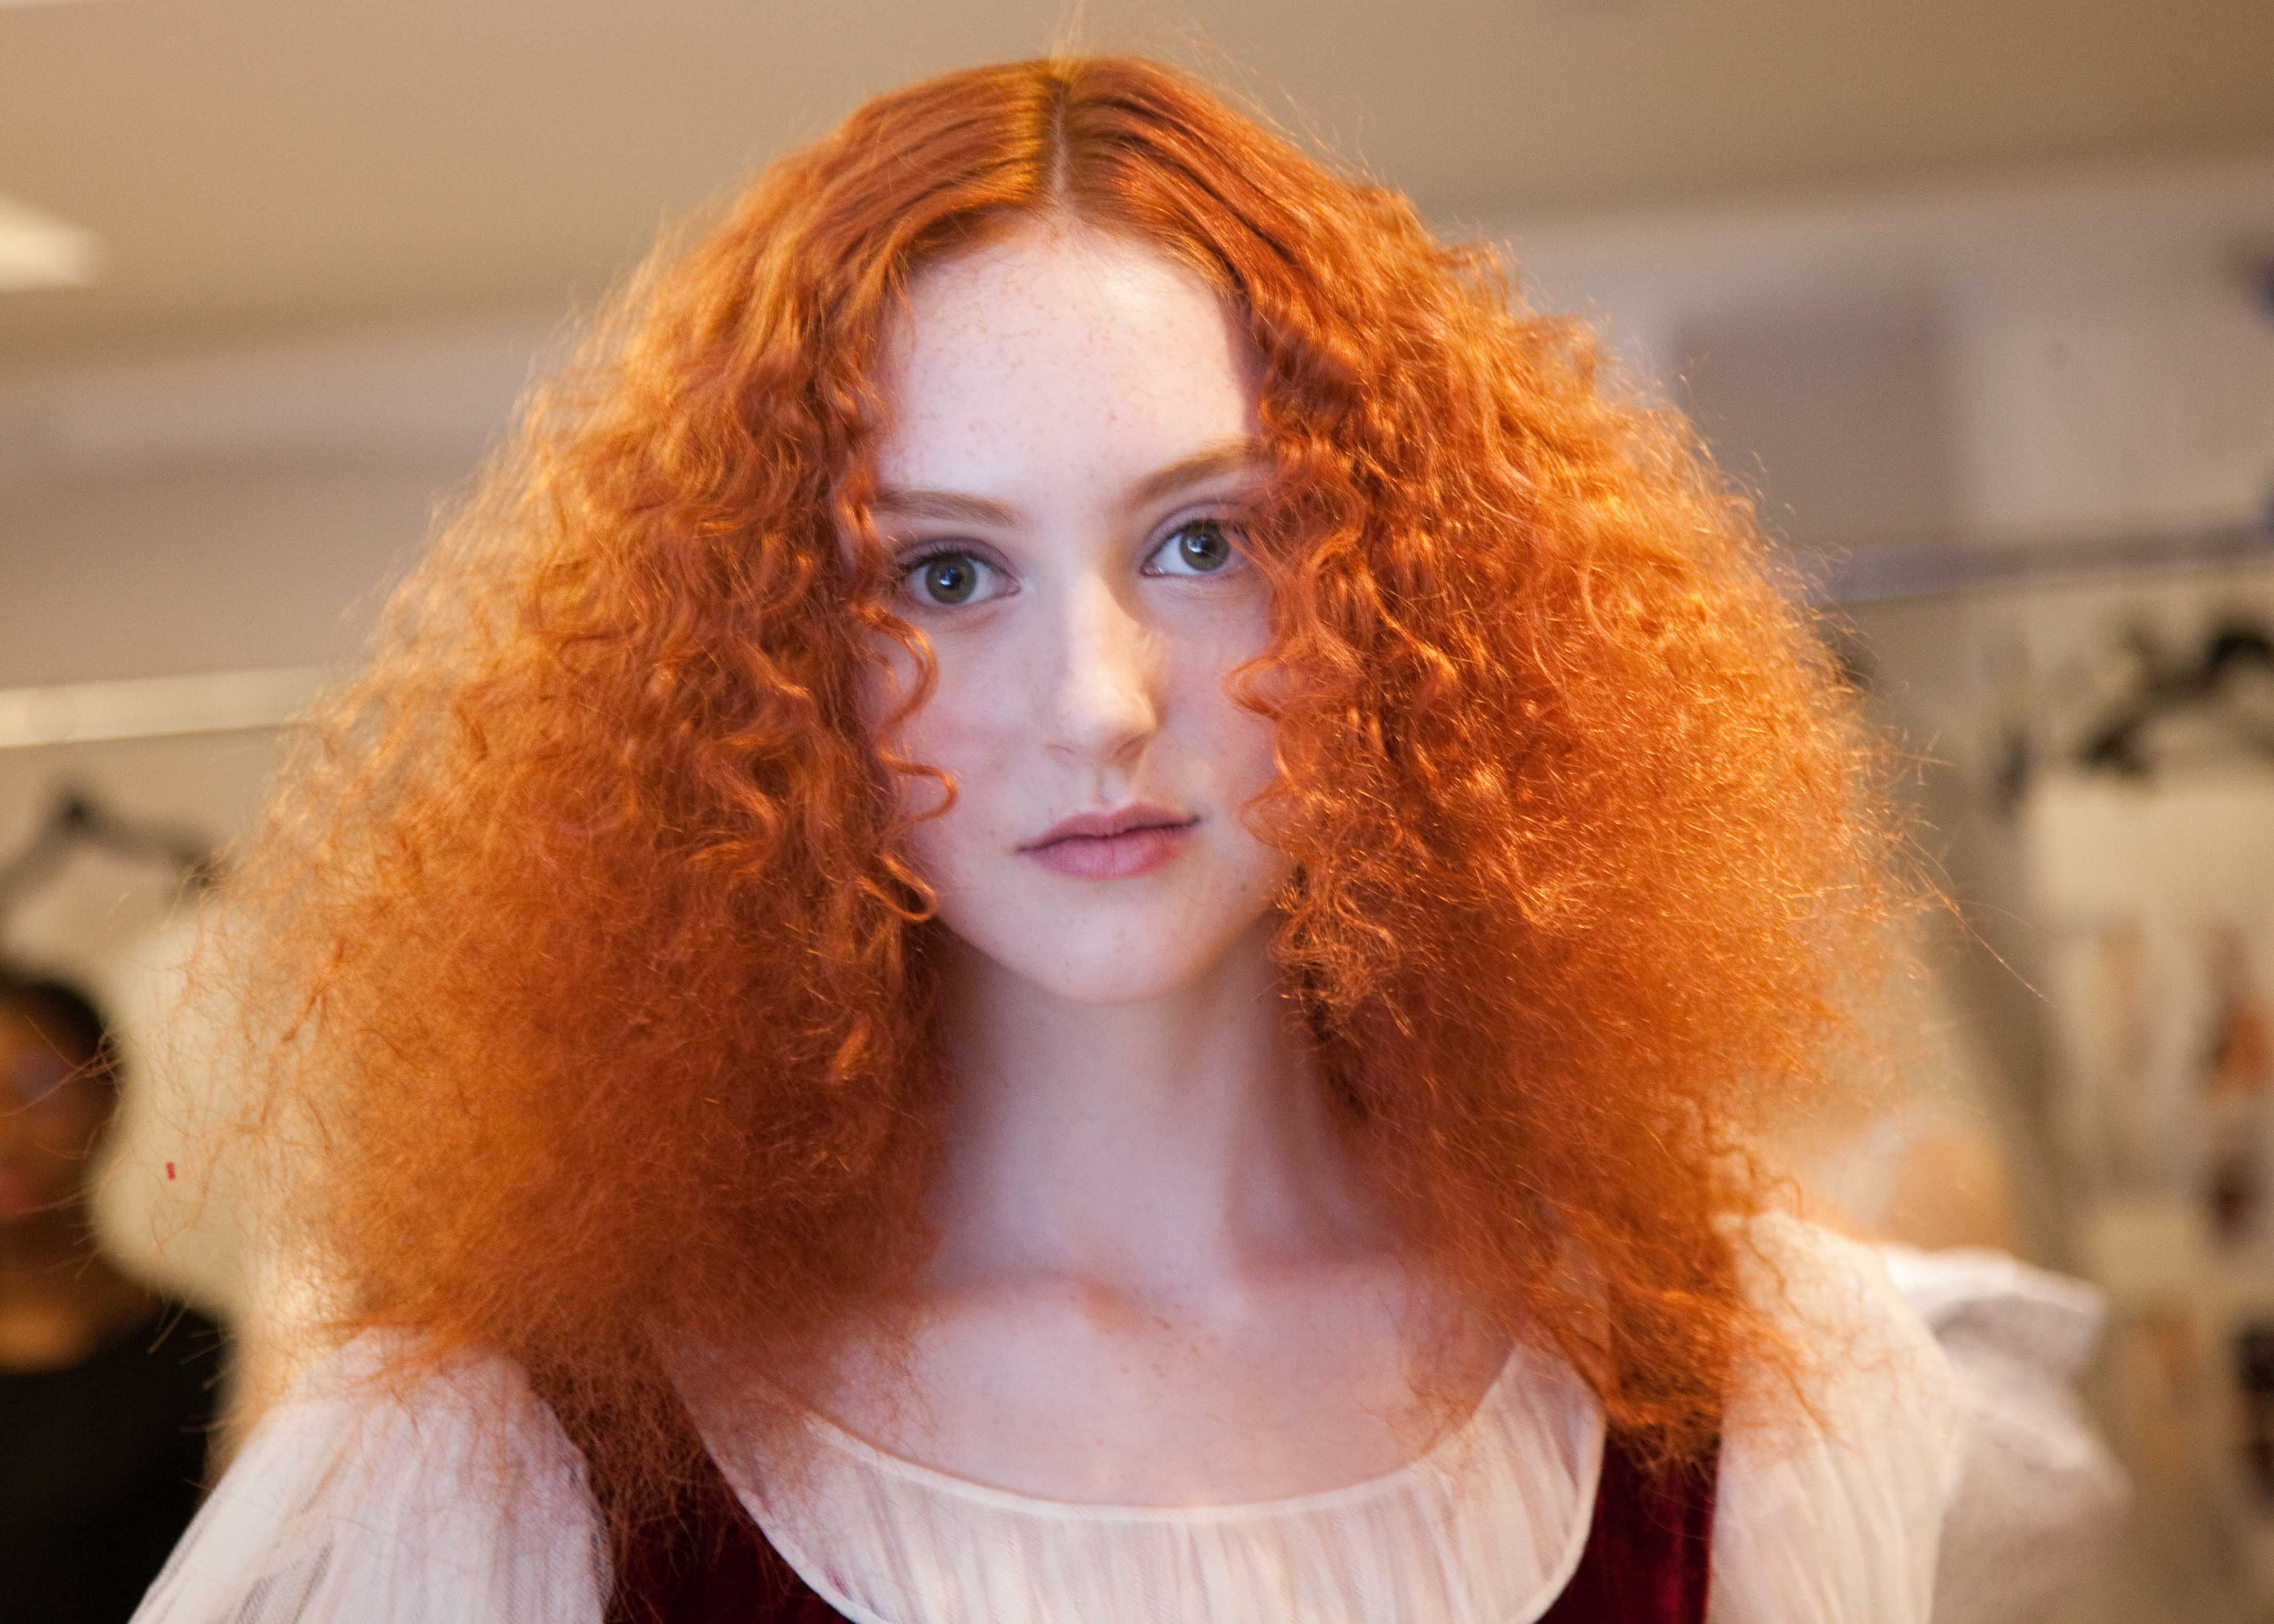 Pin by lilianavonk on kaffeeeeen pinterest redheads curly